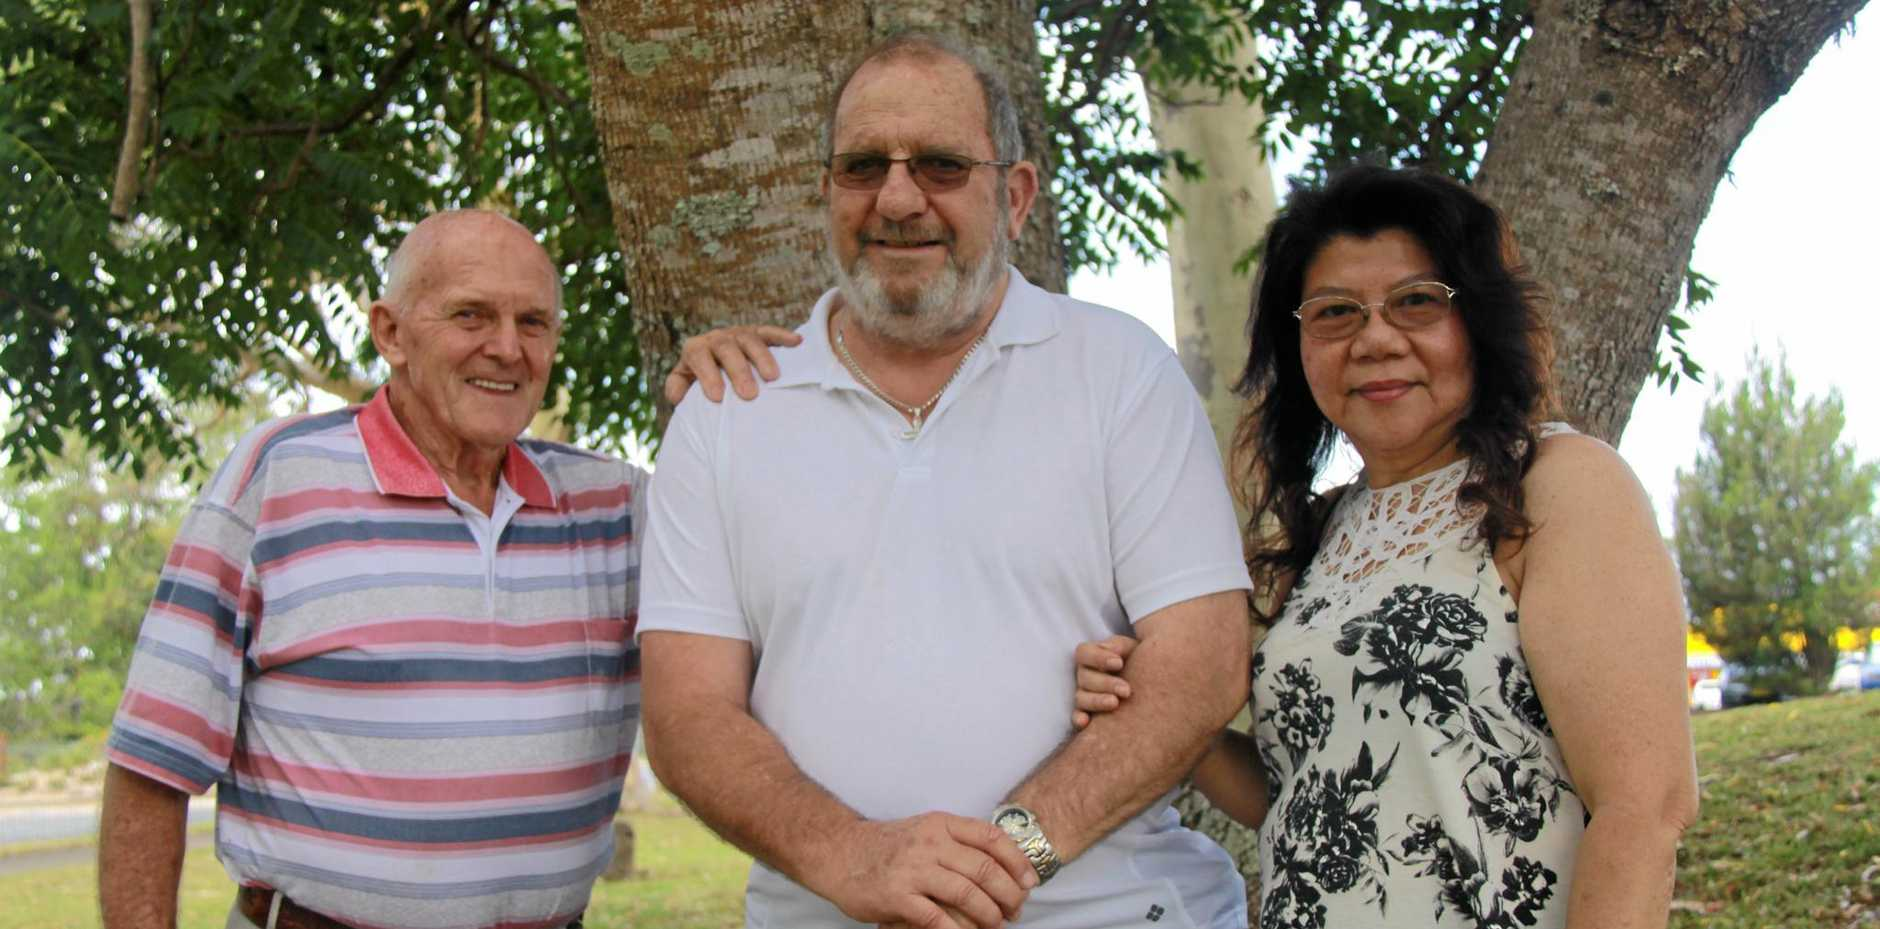 FRIENDS FOR LIFE: David Francis (white shirt) can't thank his new mate Douglas Marks and sweetheart Zemy Rochester enough for saving his life earlier this month when they combined efforts to get him to hospital.